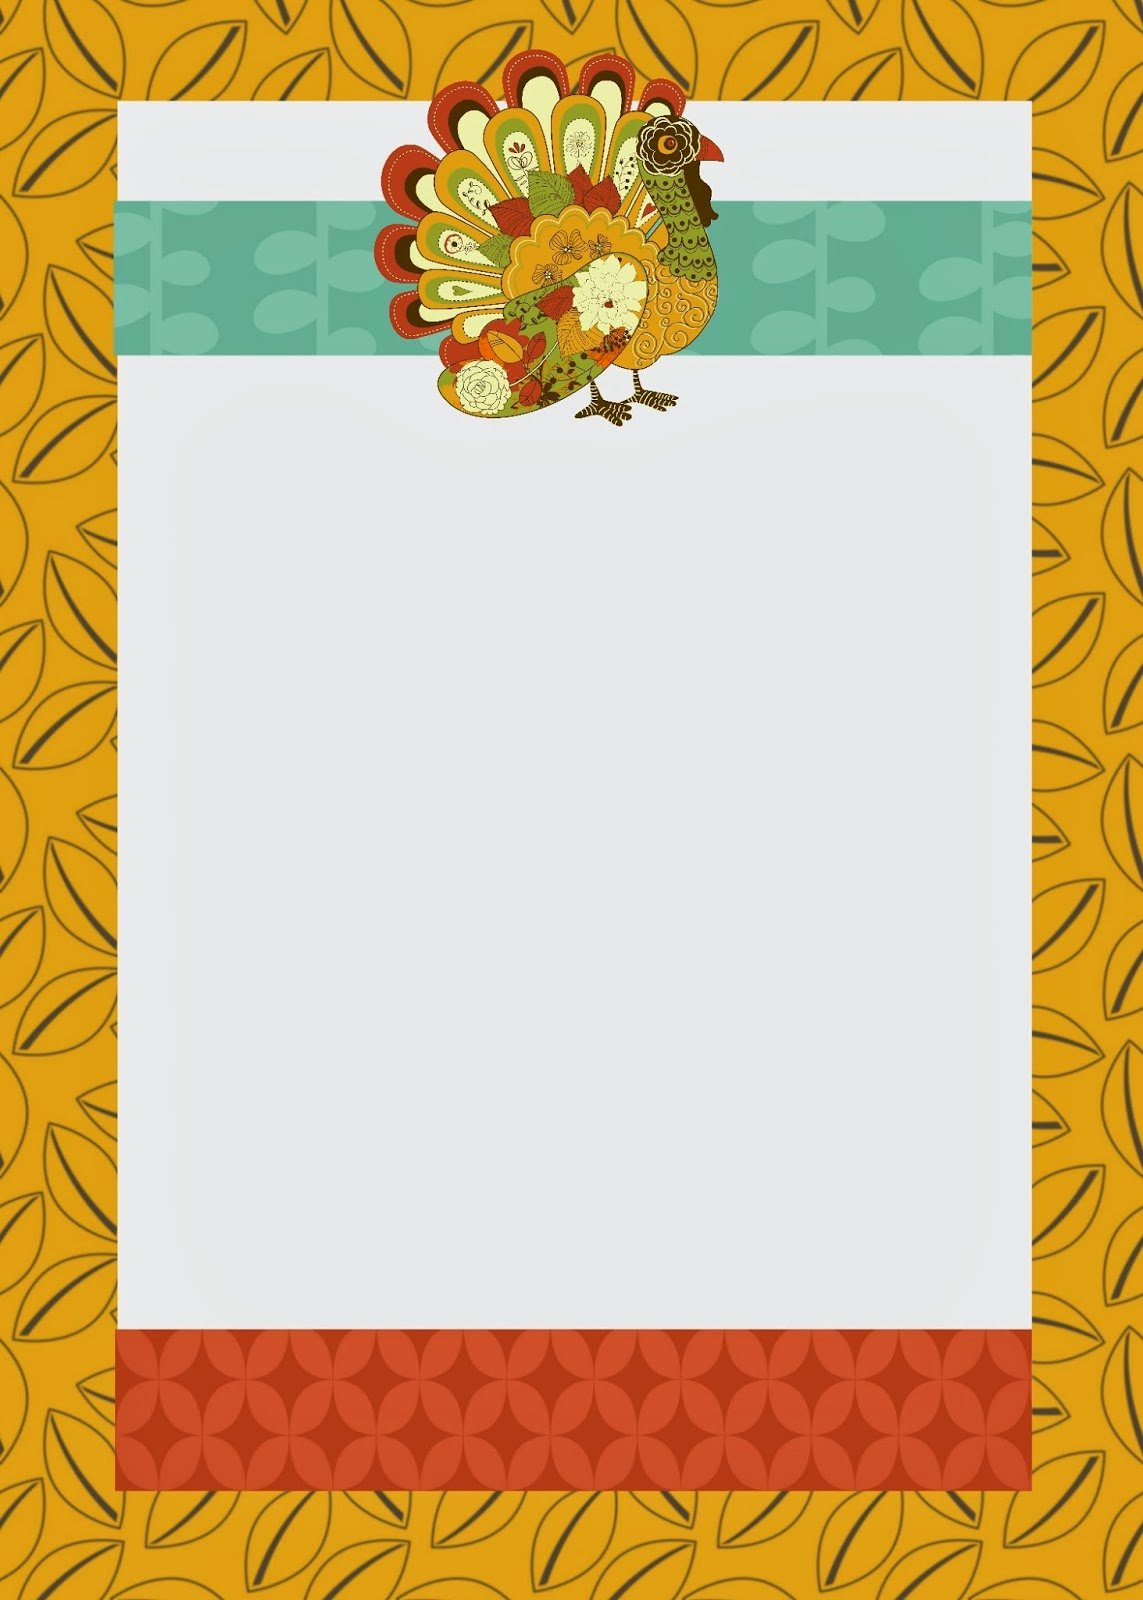 Thanksgiving Potluck Signup Sheet Beautiful Thanksgiving Potluck Signup